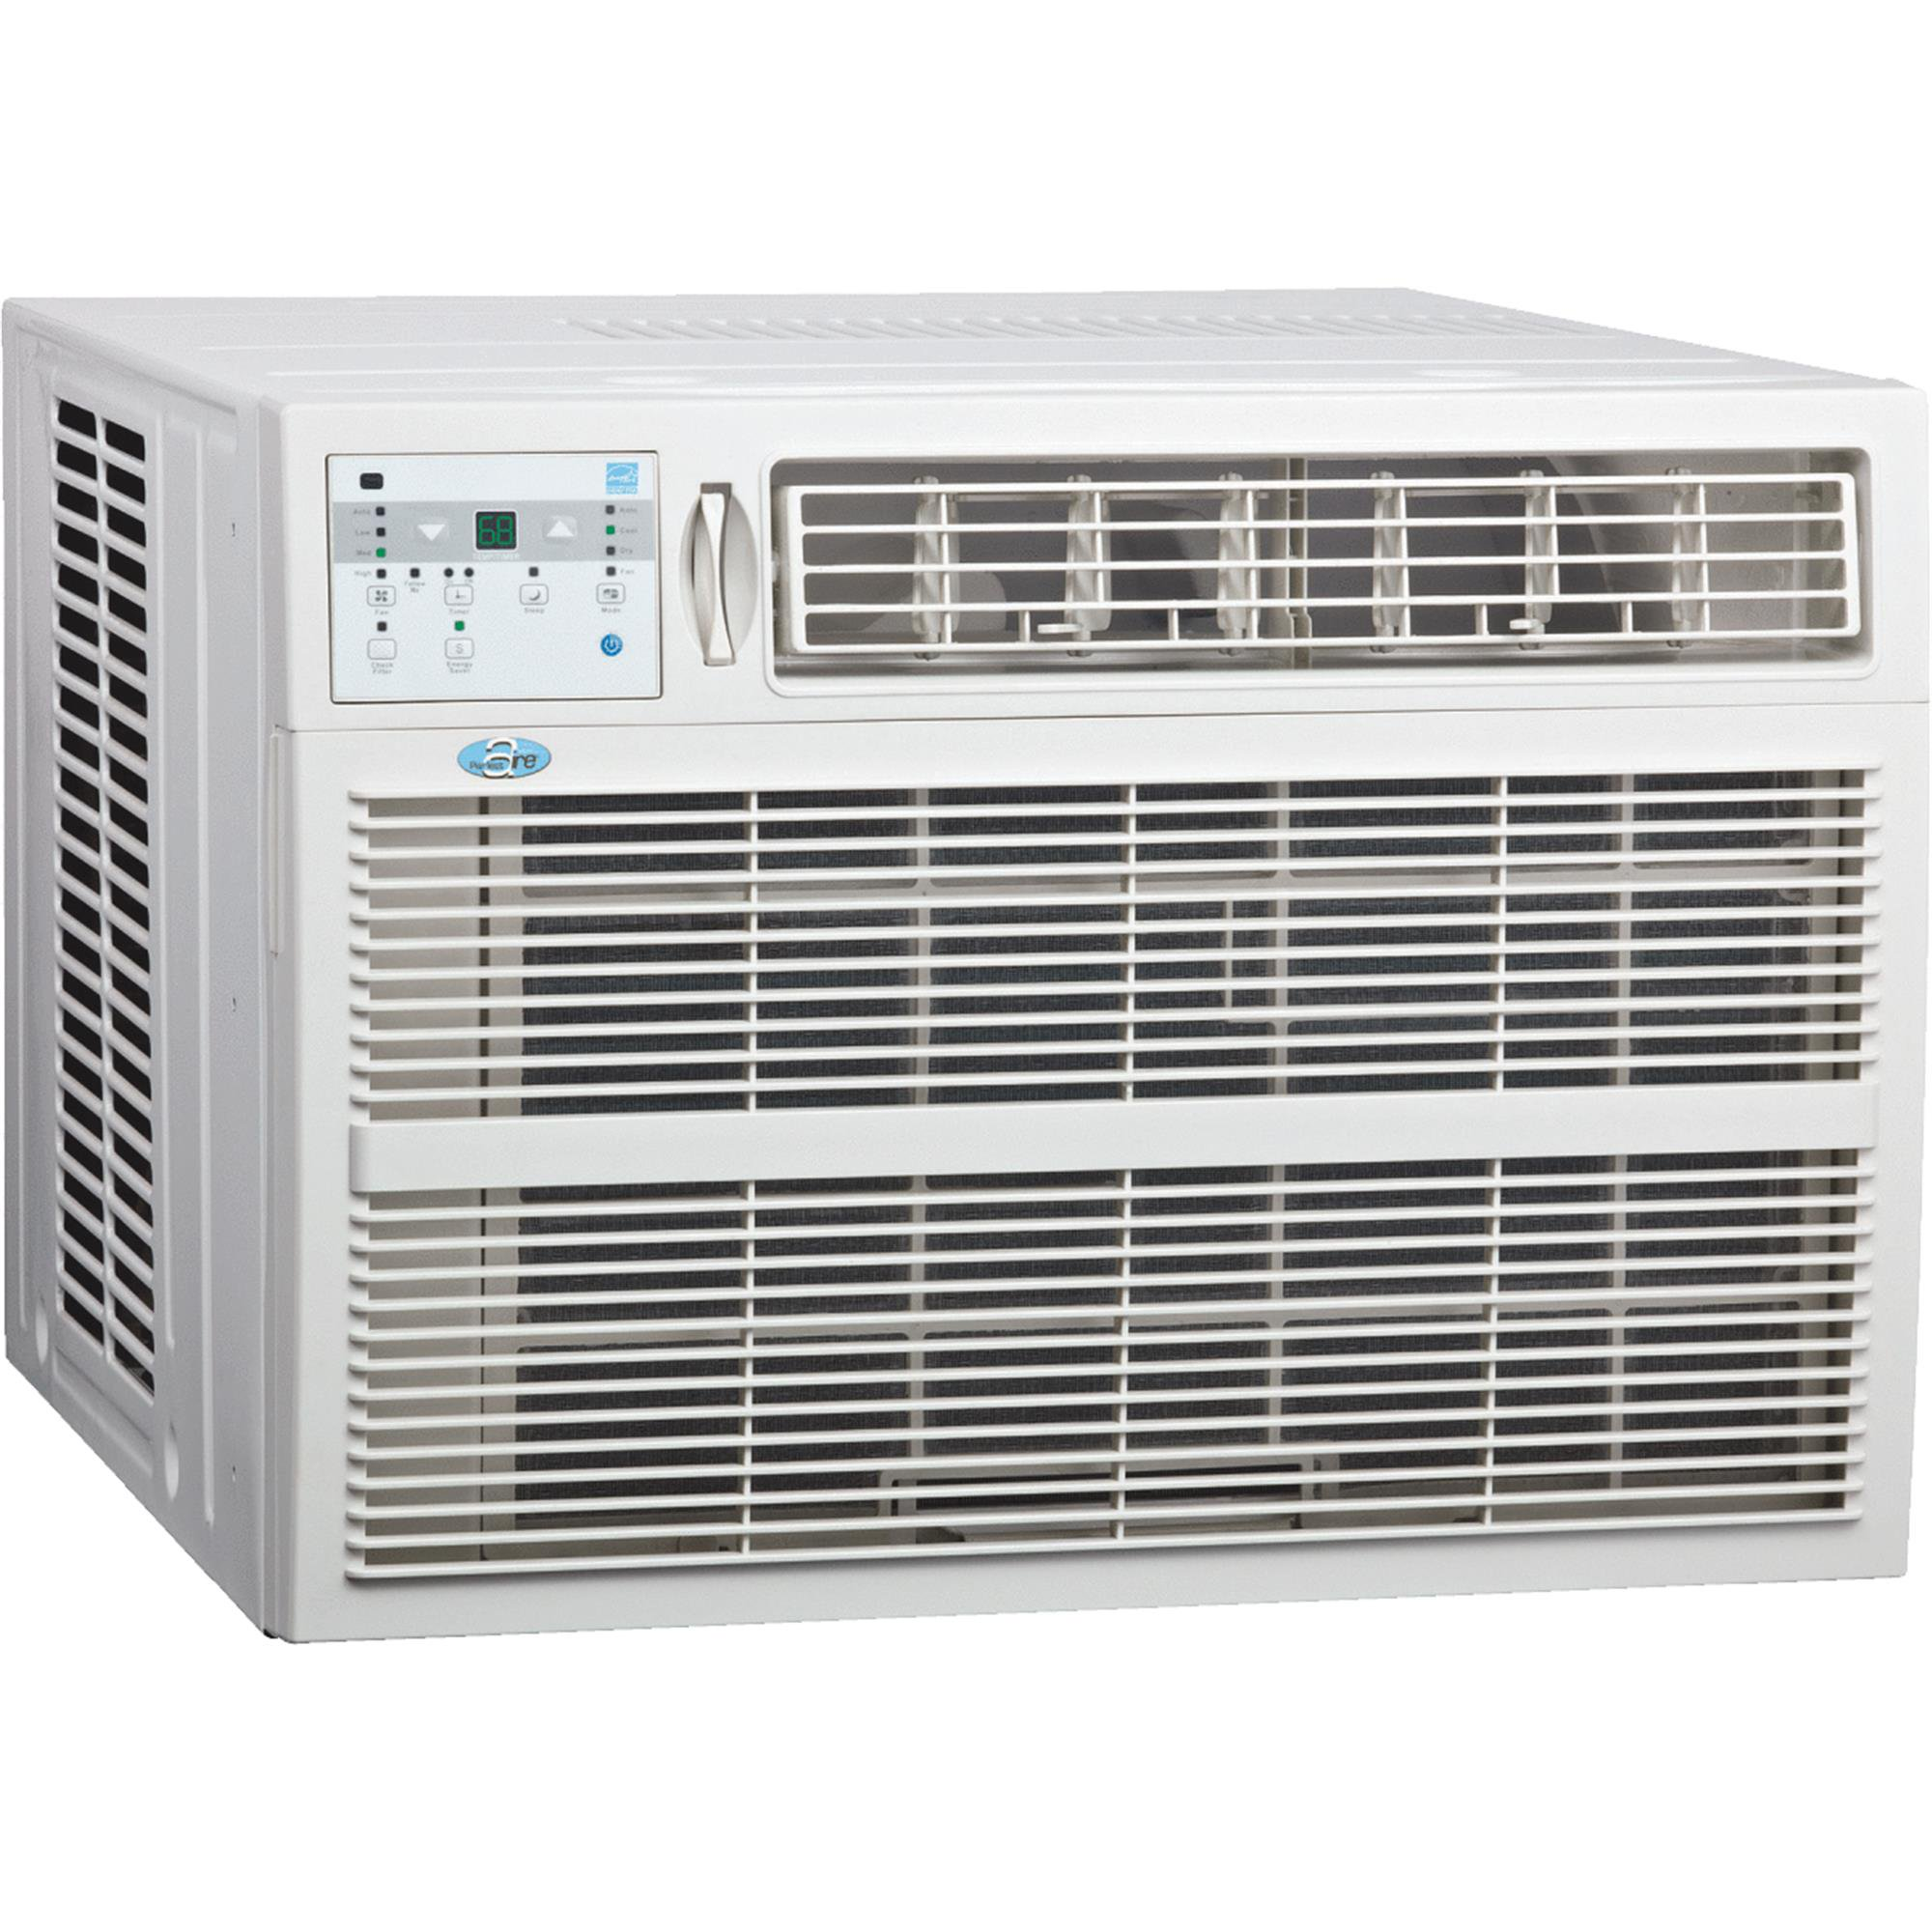 Perfect Aire 25,000 BTU Window Air Conditioner